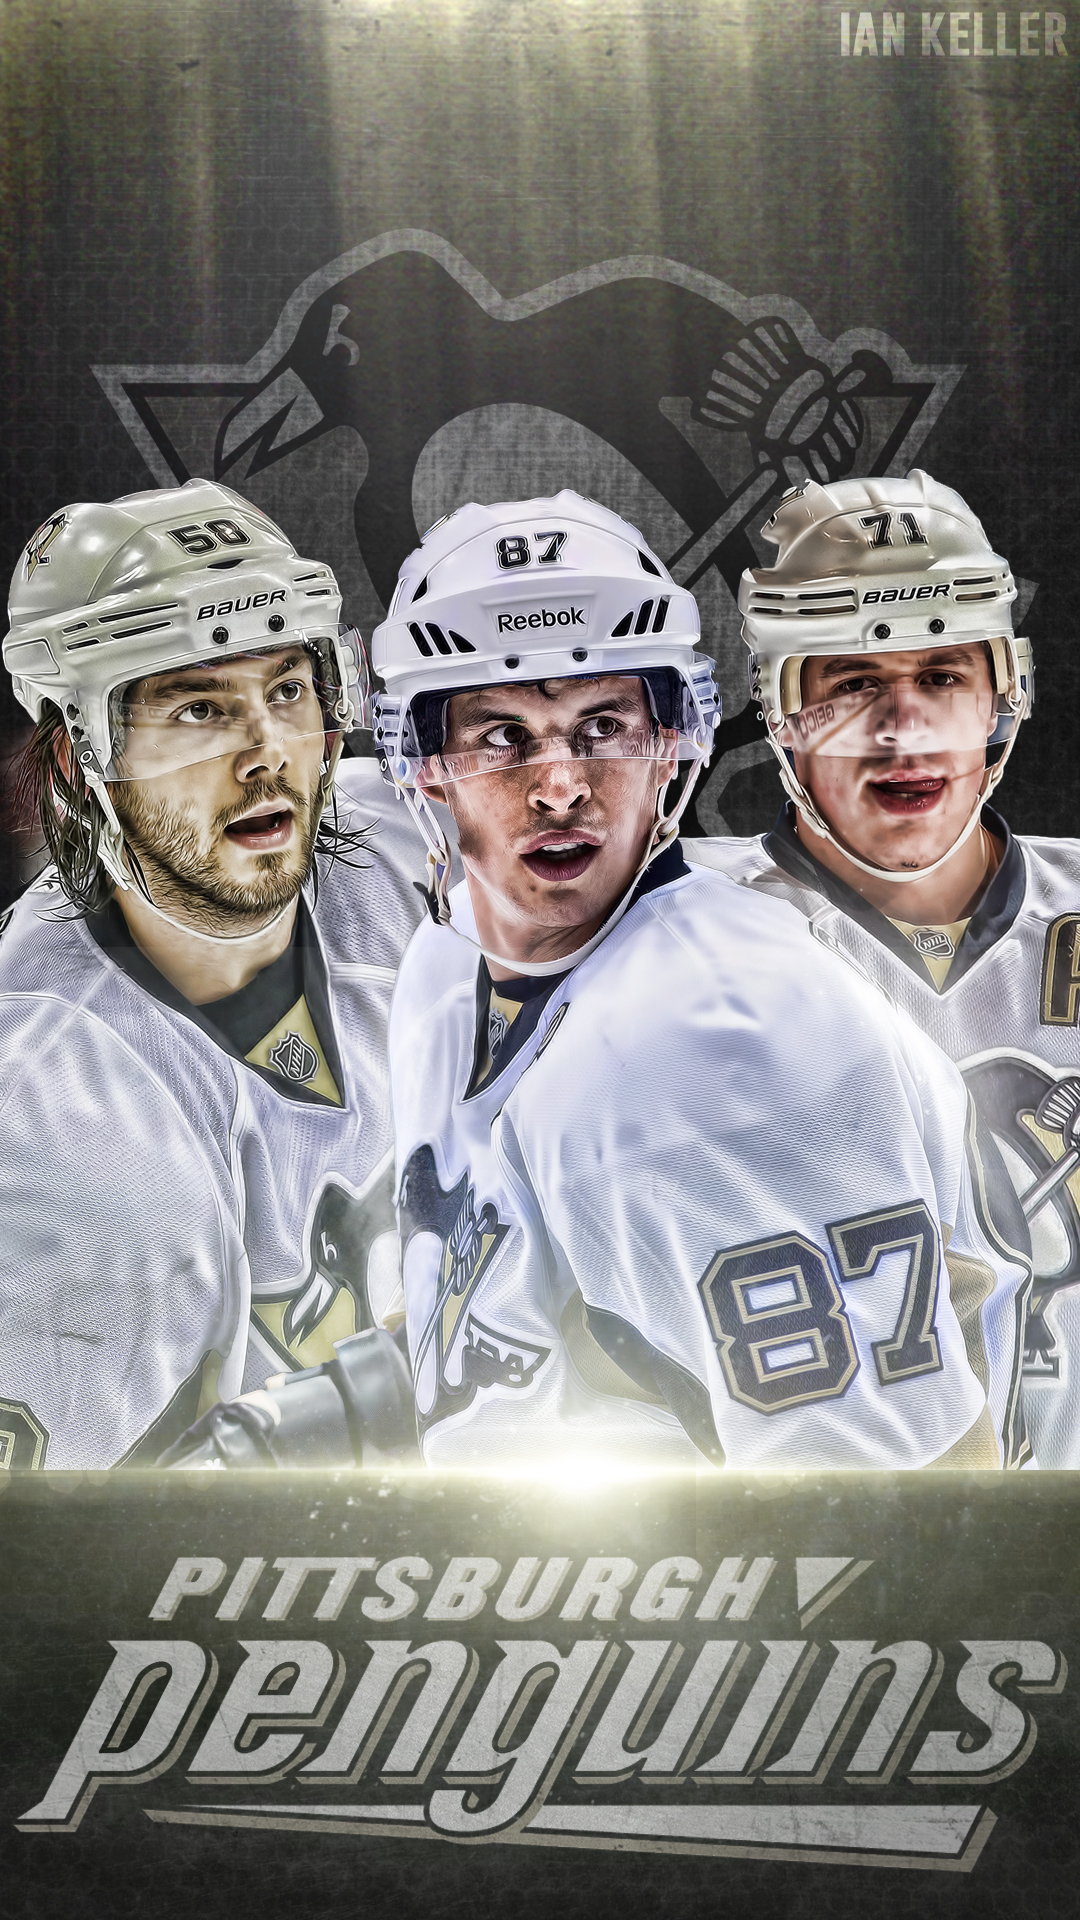 Pittsburgh penguins phone wallpaper by iankeller on deviantart - Pittsburgh penguins iphone wallpaper ...